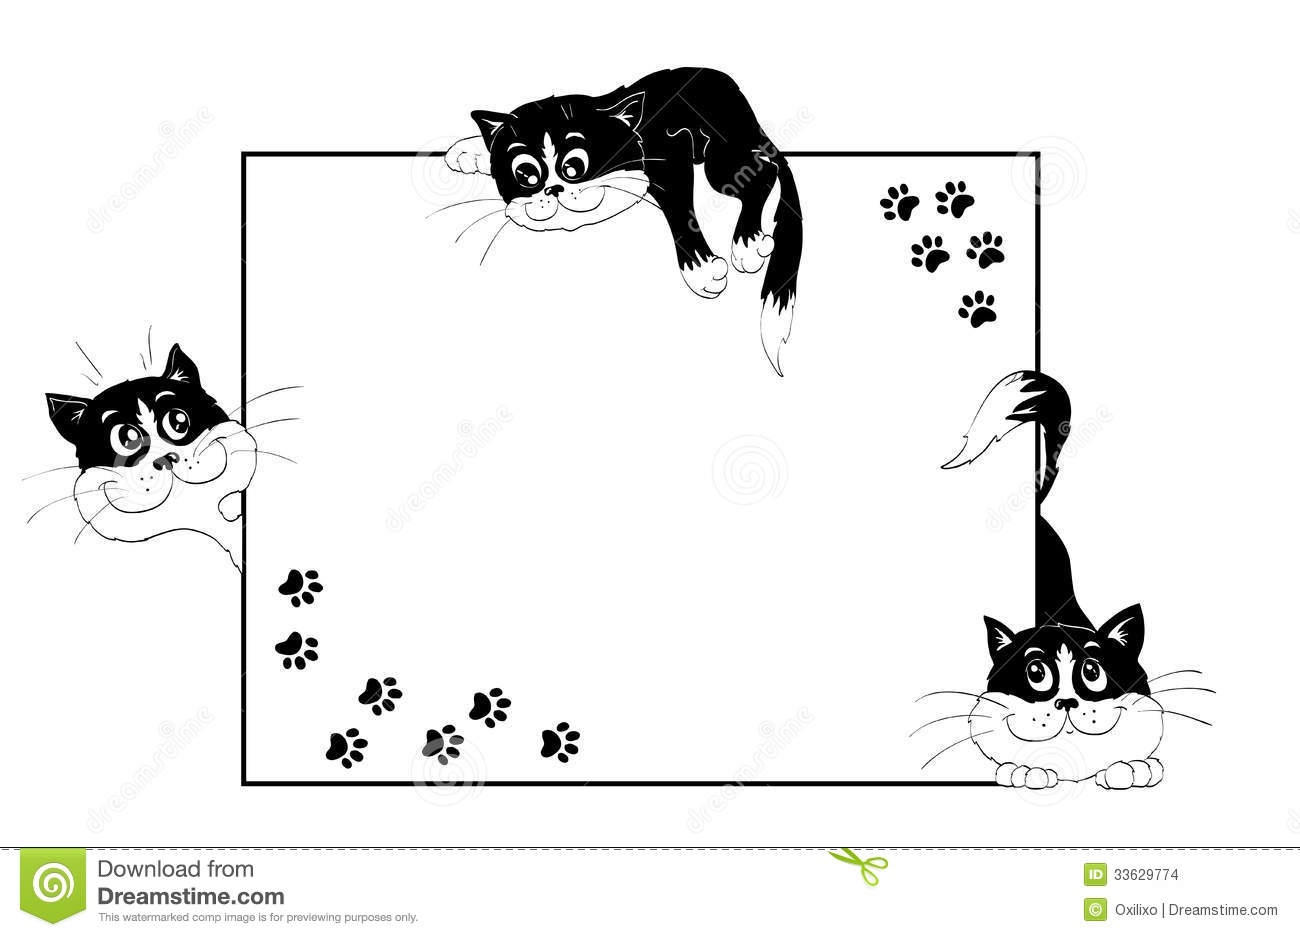 ... black-and-white kittens and cats steps on isolated white background